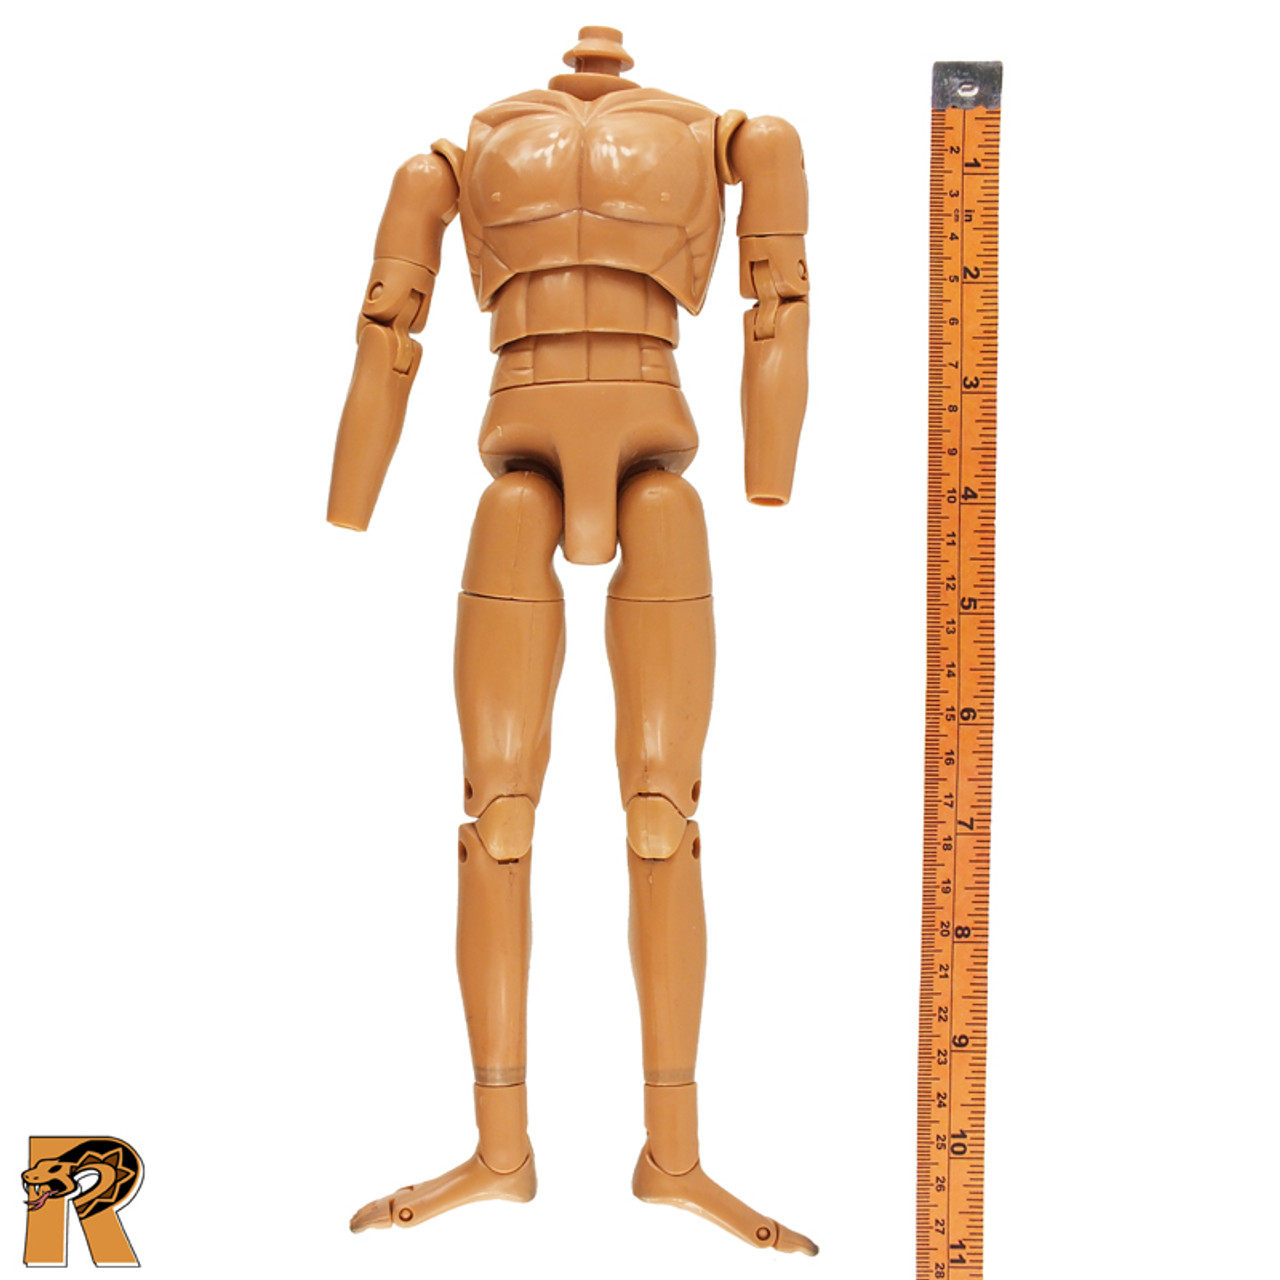 Obama - Nude Body **STAINS** - 1/6 Scale